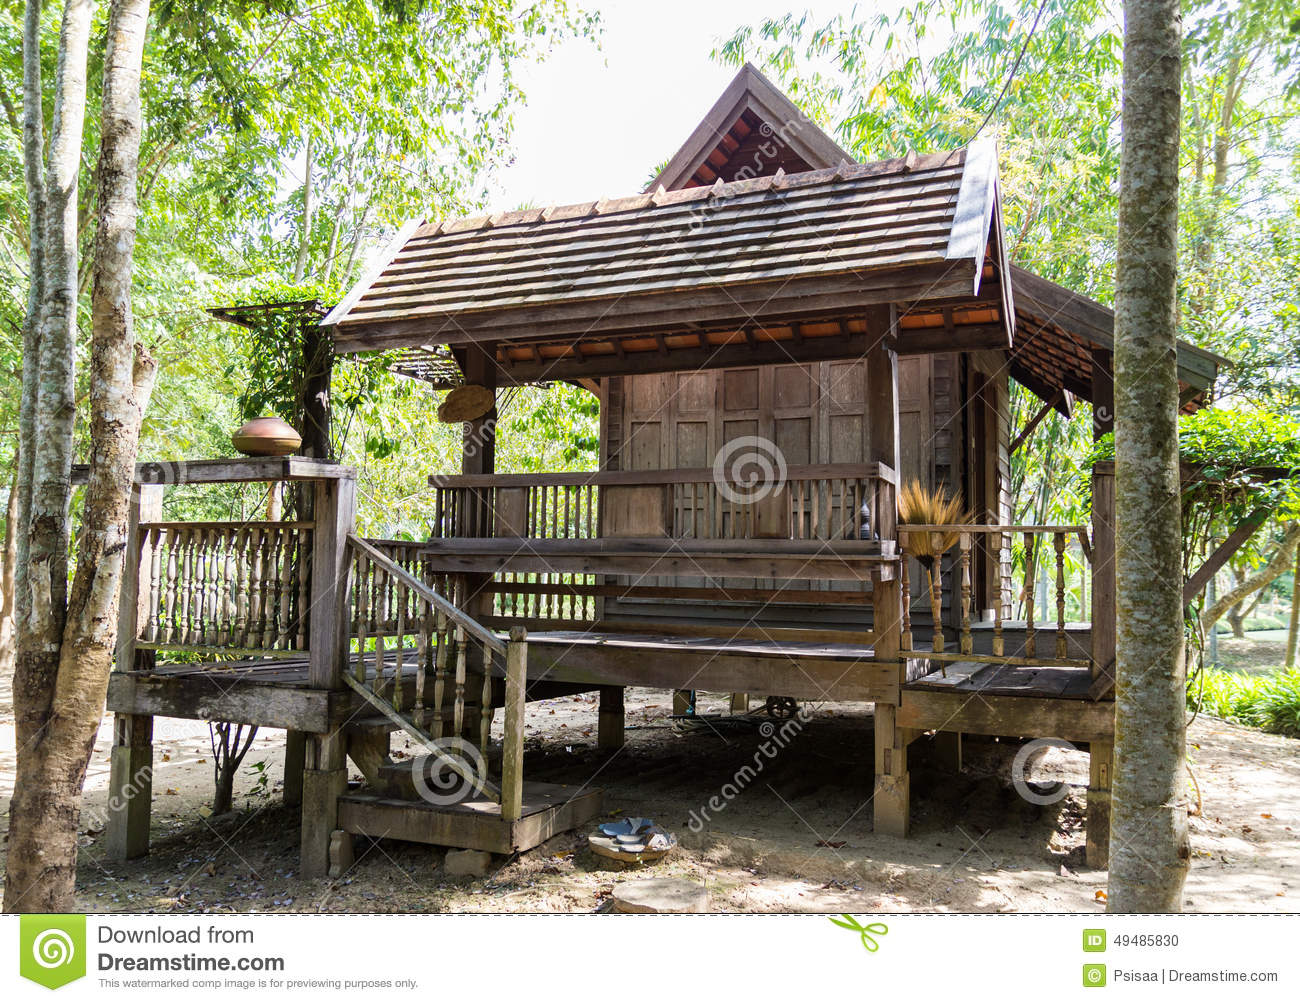 House design thailand - Royalty Free Stock Photo Download Thailand Traditional Old Wooden House